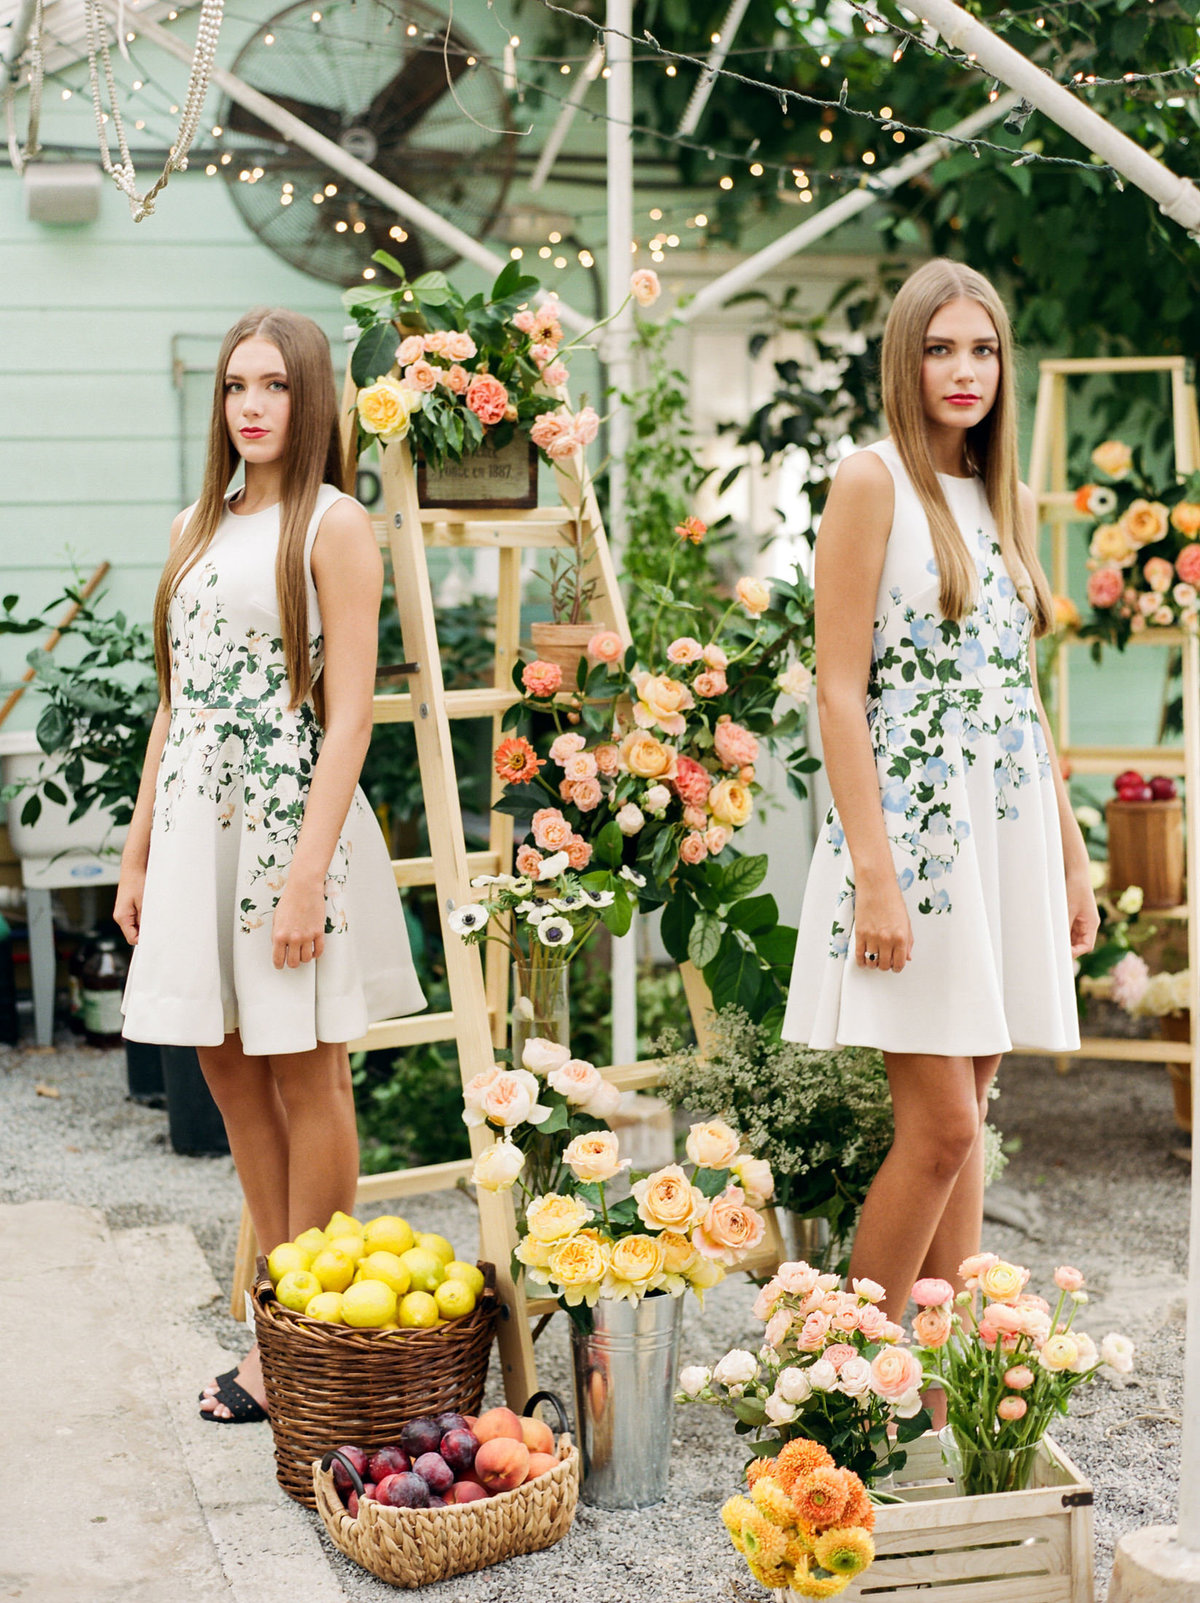 WhimsicalGreenhouseFashion-0002-Shieldmaidens_Film_006-474490020006